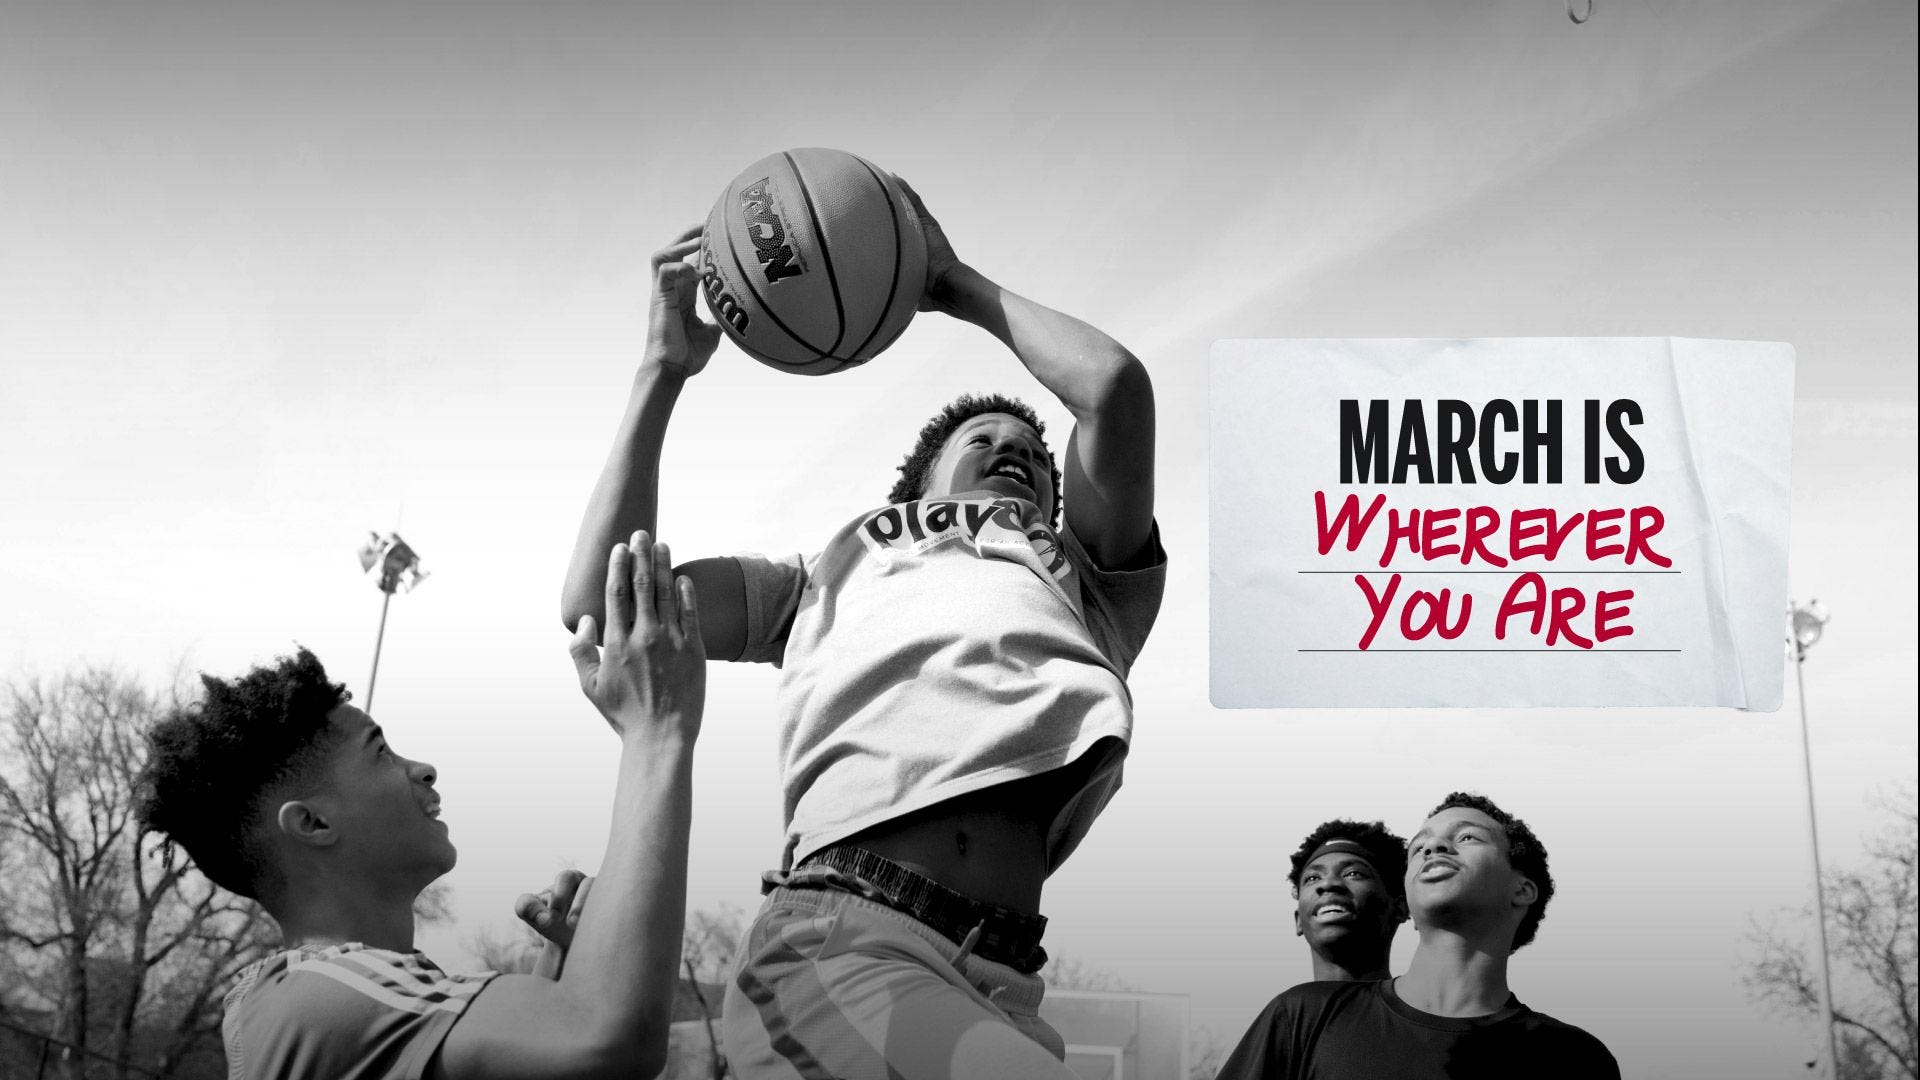 march is whereever you are